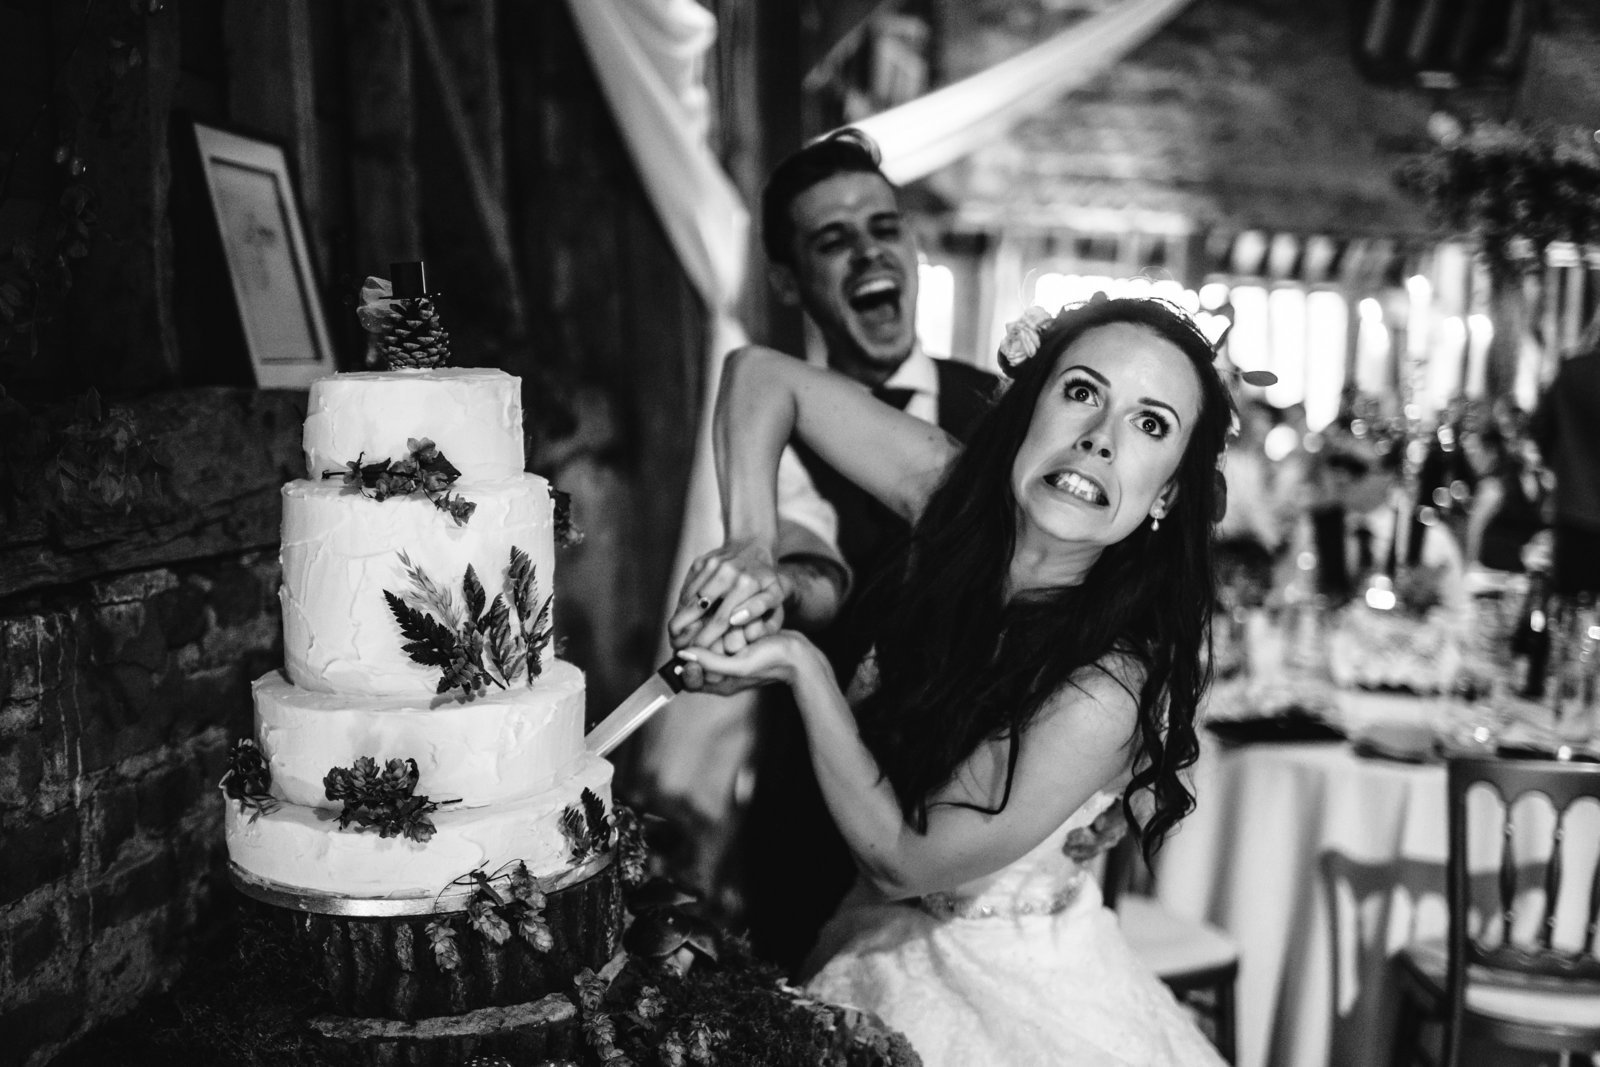 A Bride pulls a funny face while cutting her wedding cake at Suffolk Barn Hawstead